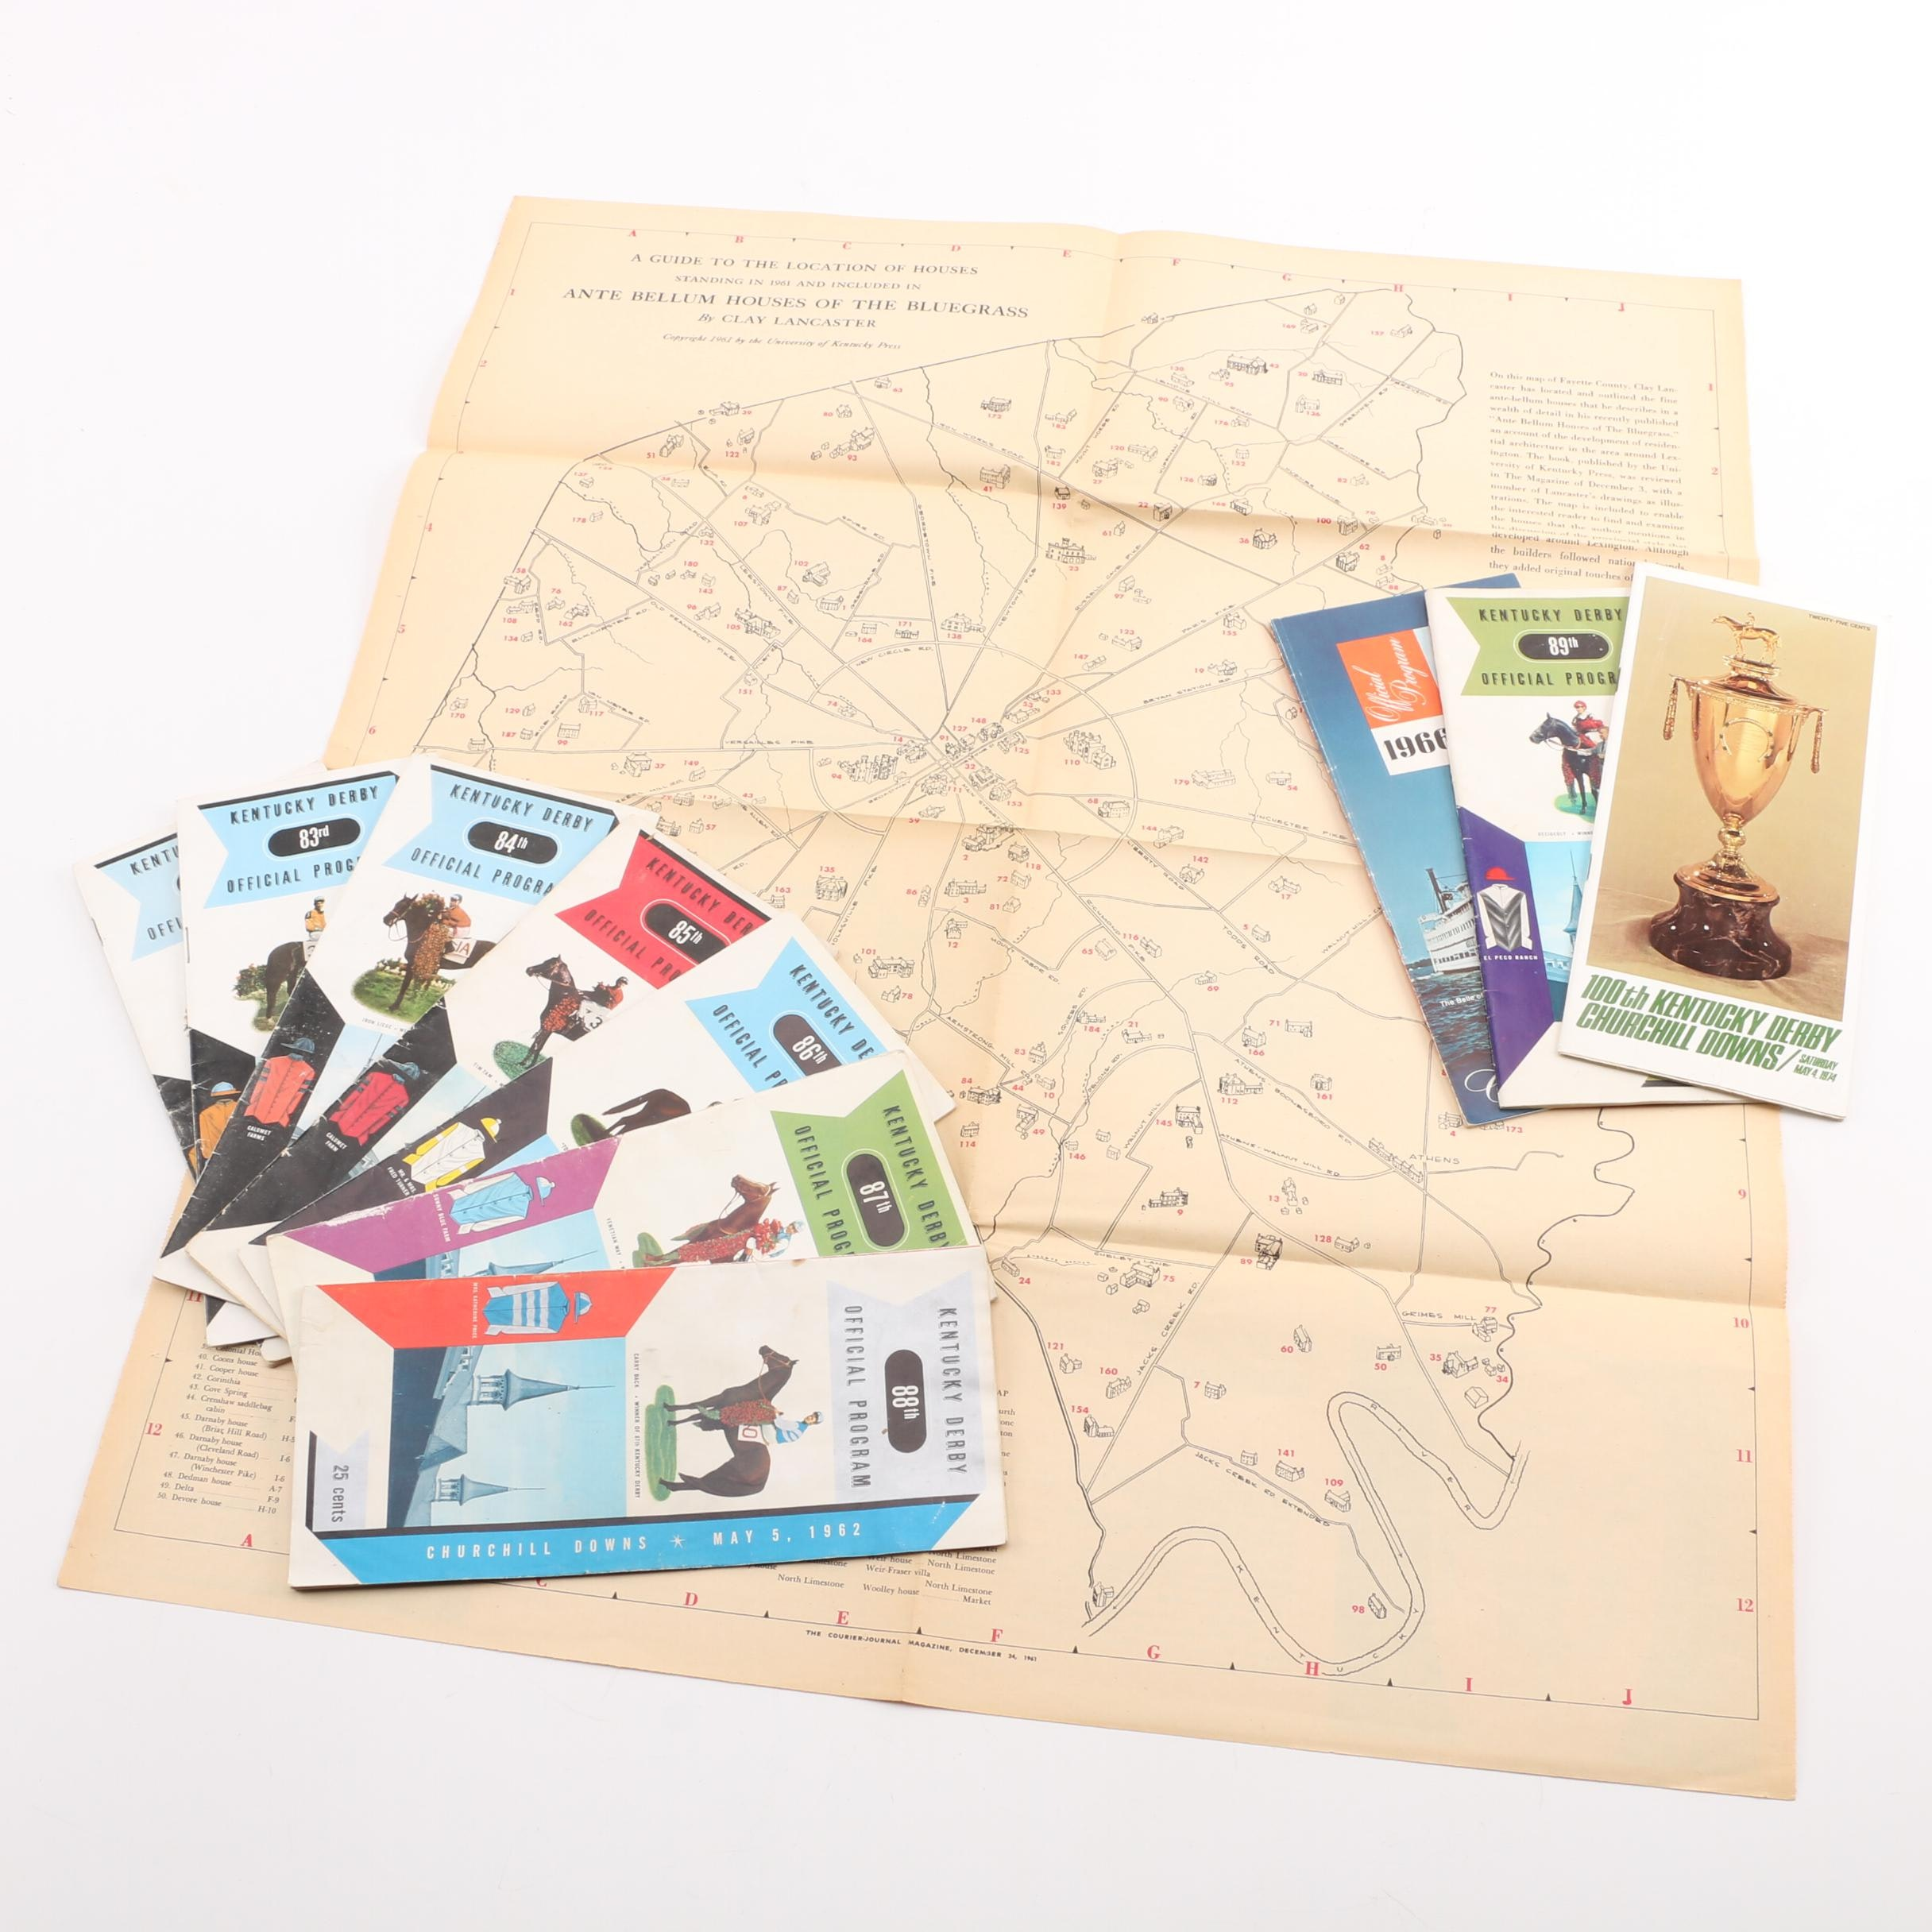 Vintage Kentucky Derby Programs with Map